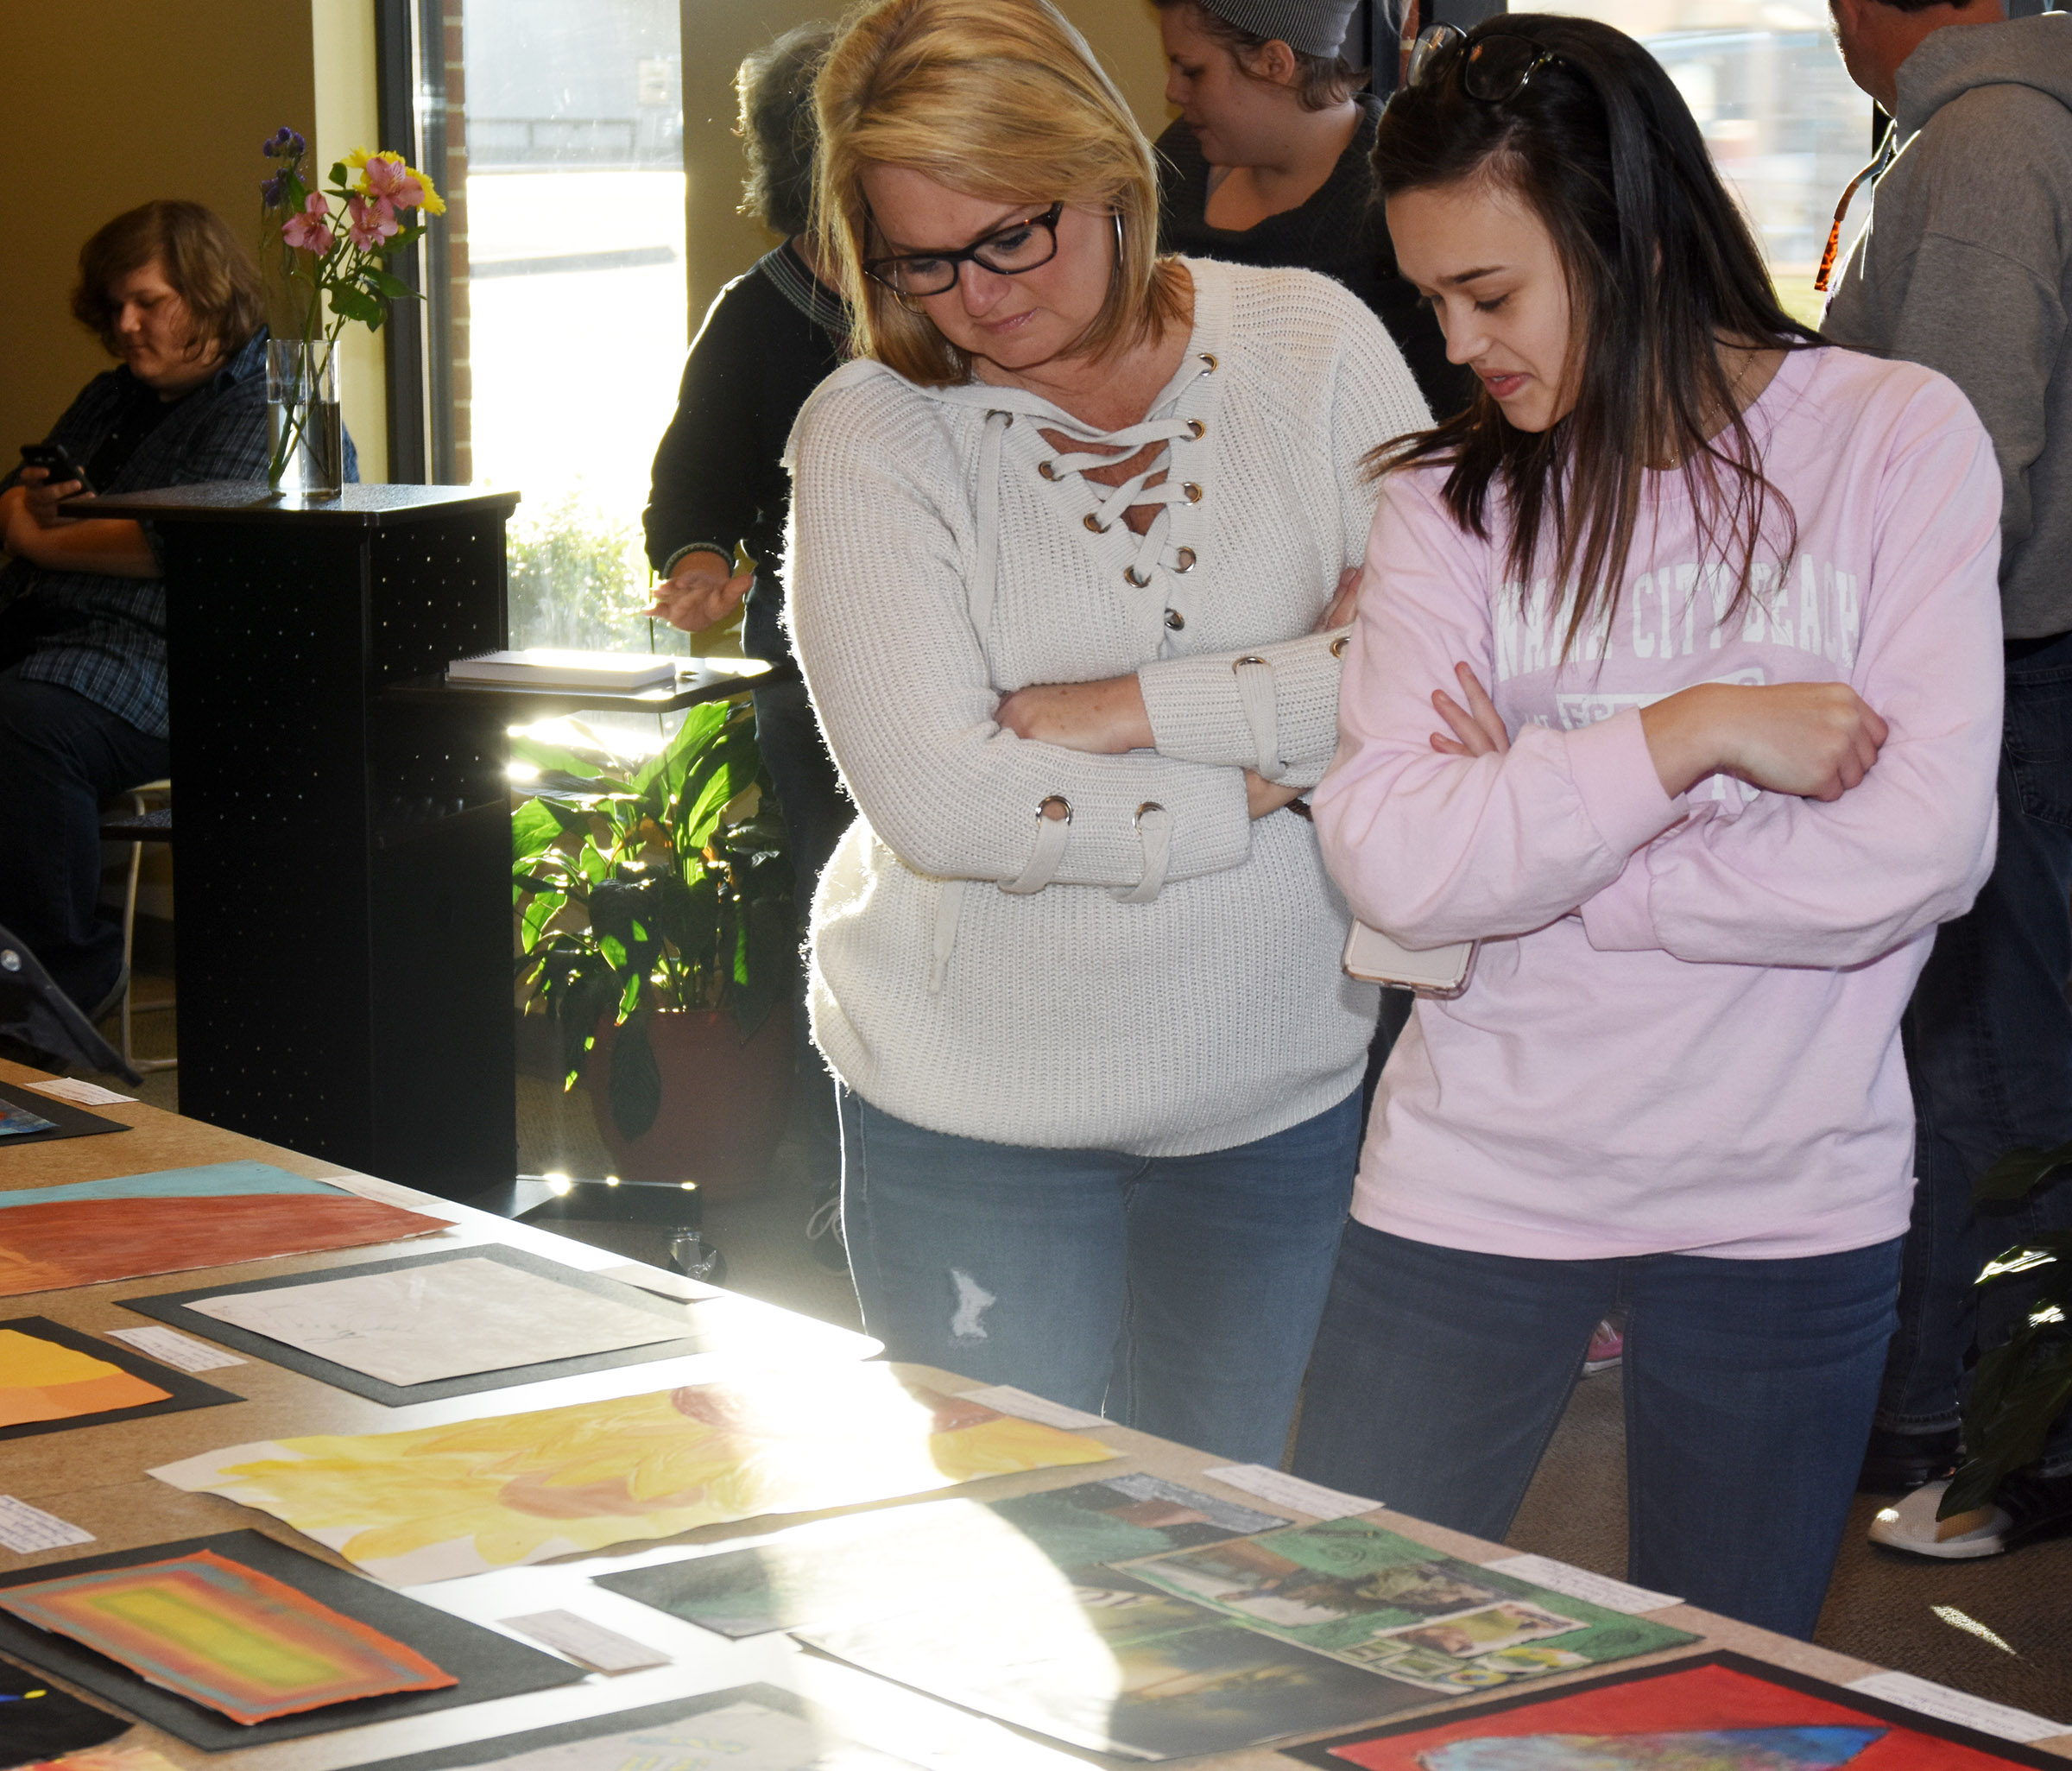 Campbellsville Middle School eighth-grader Tayler Thompson and her mother Kim look at the artwork on display.